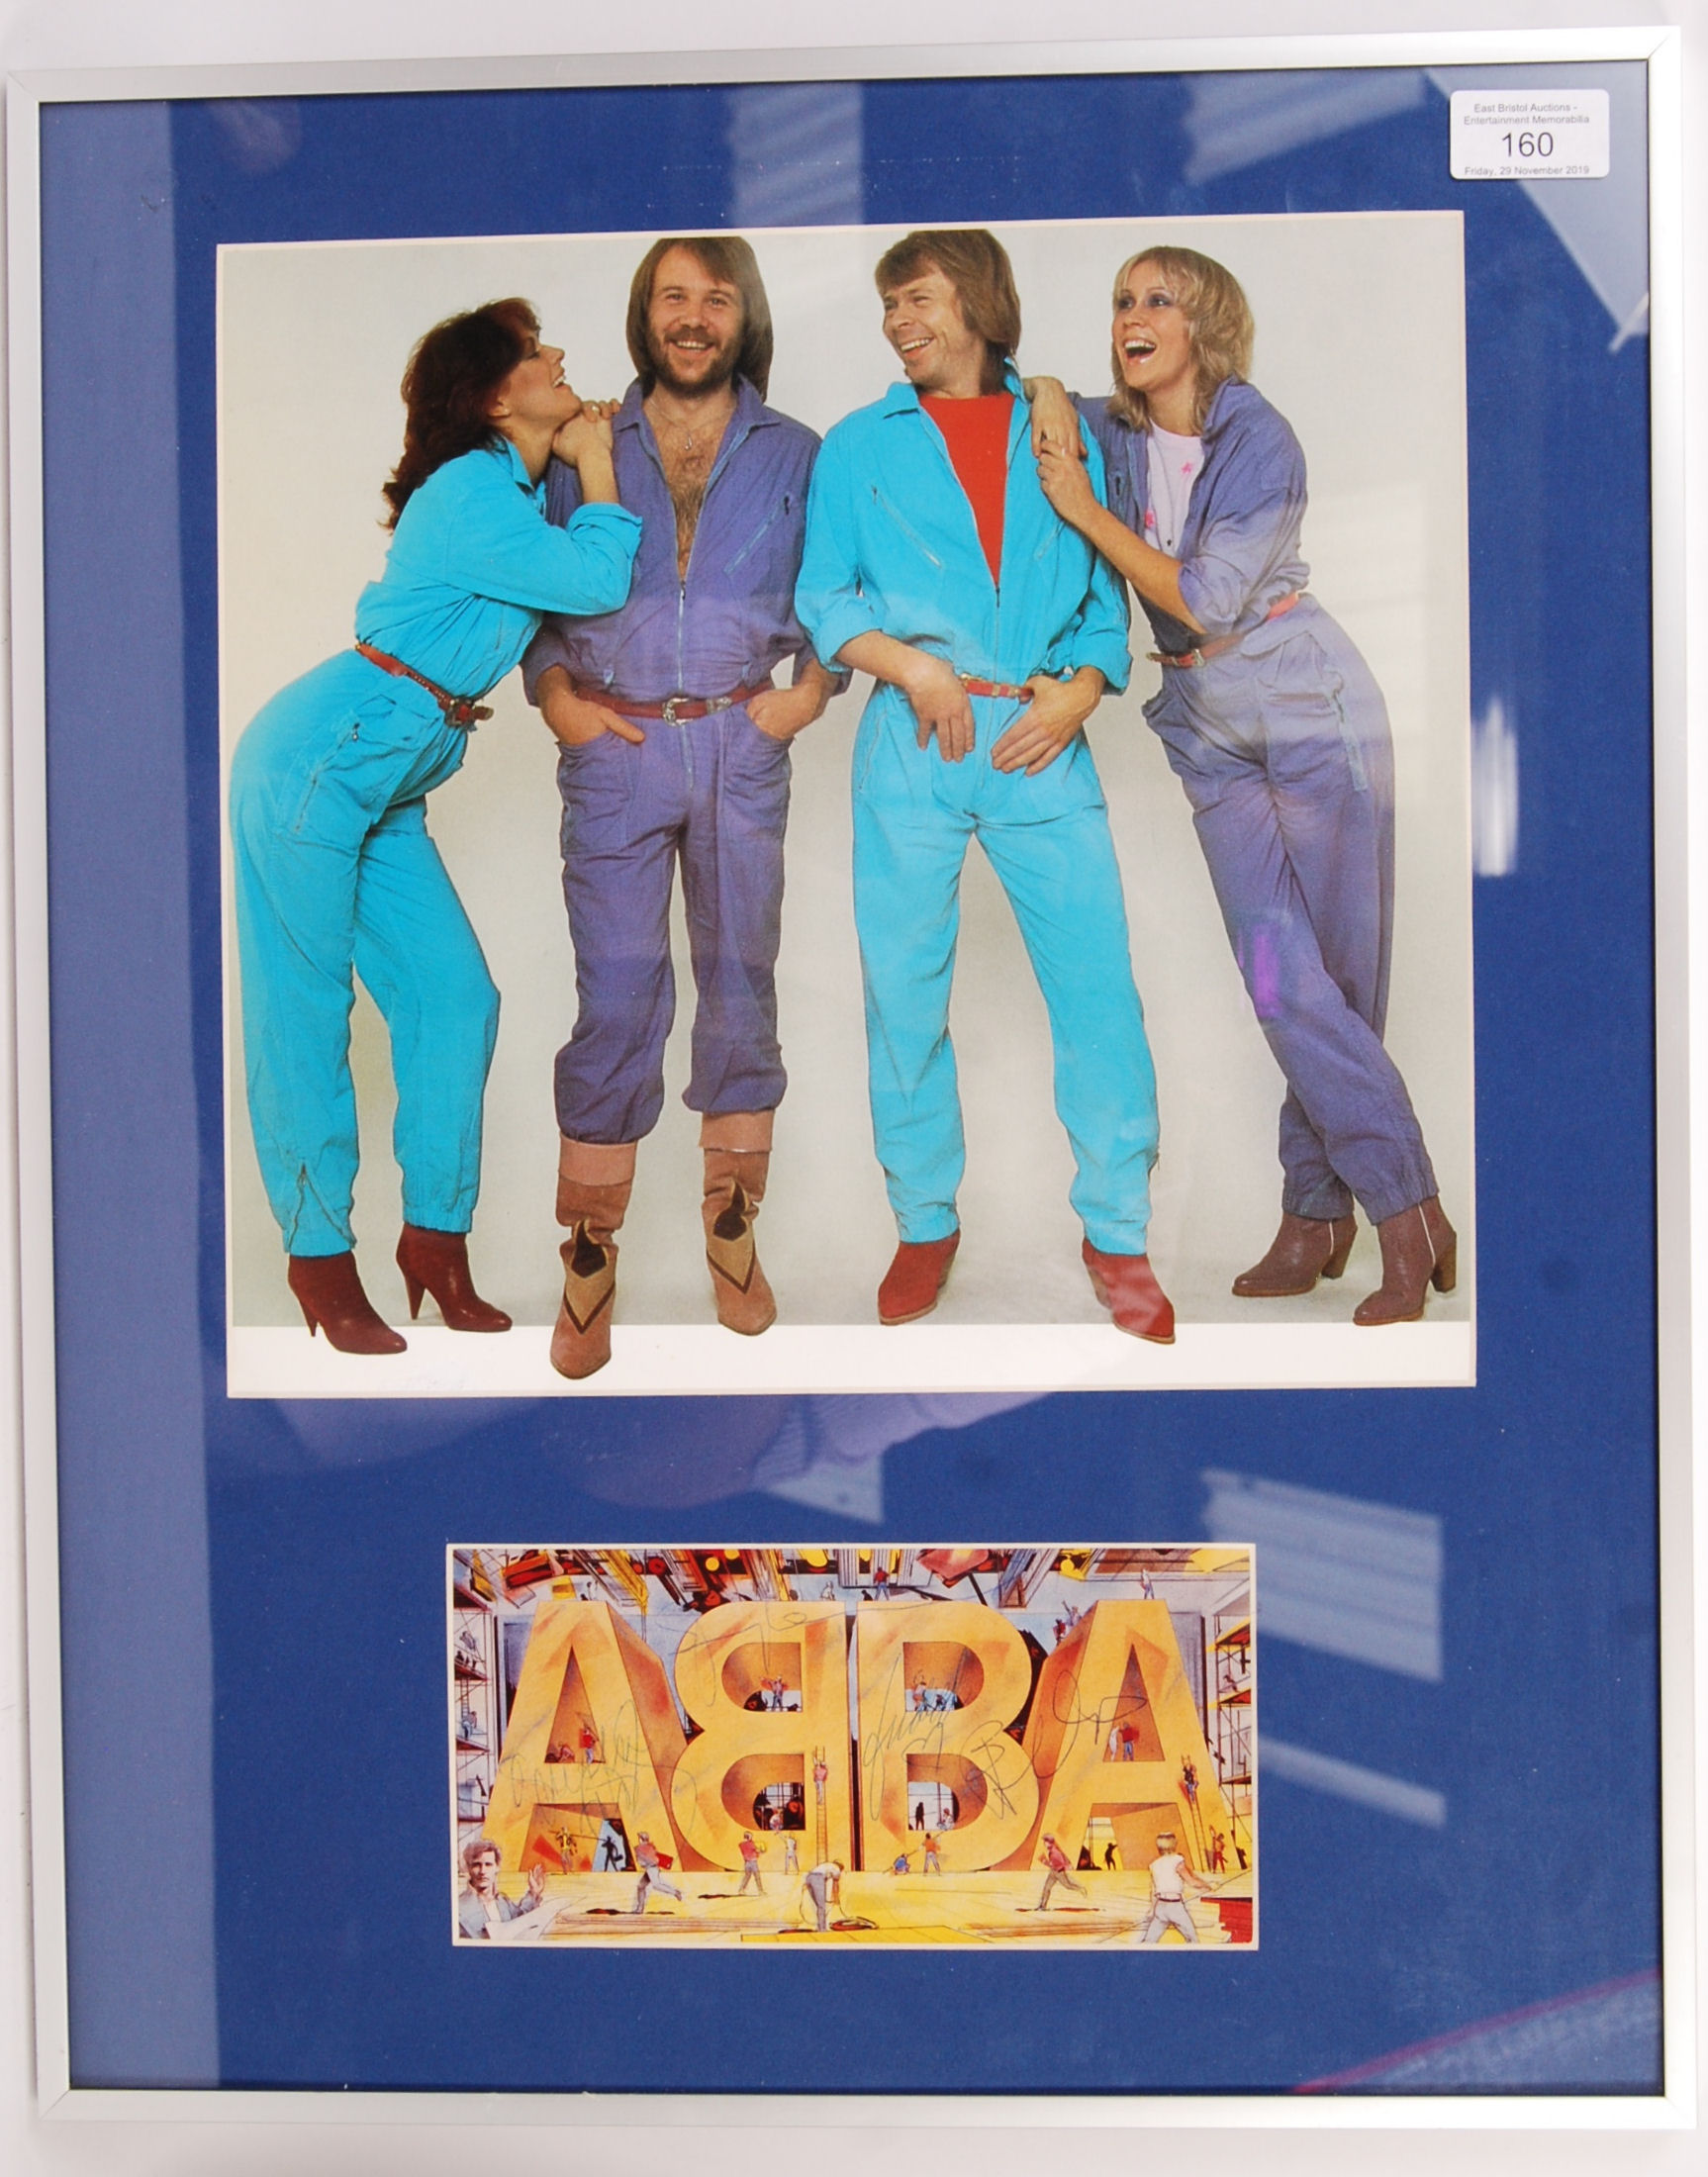 Lot 160 - RARE ABBA PROMOTIONAL POSTCARD FULLY SIGNED BY BAN